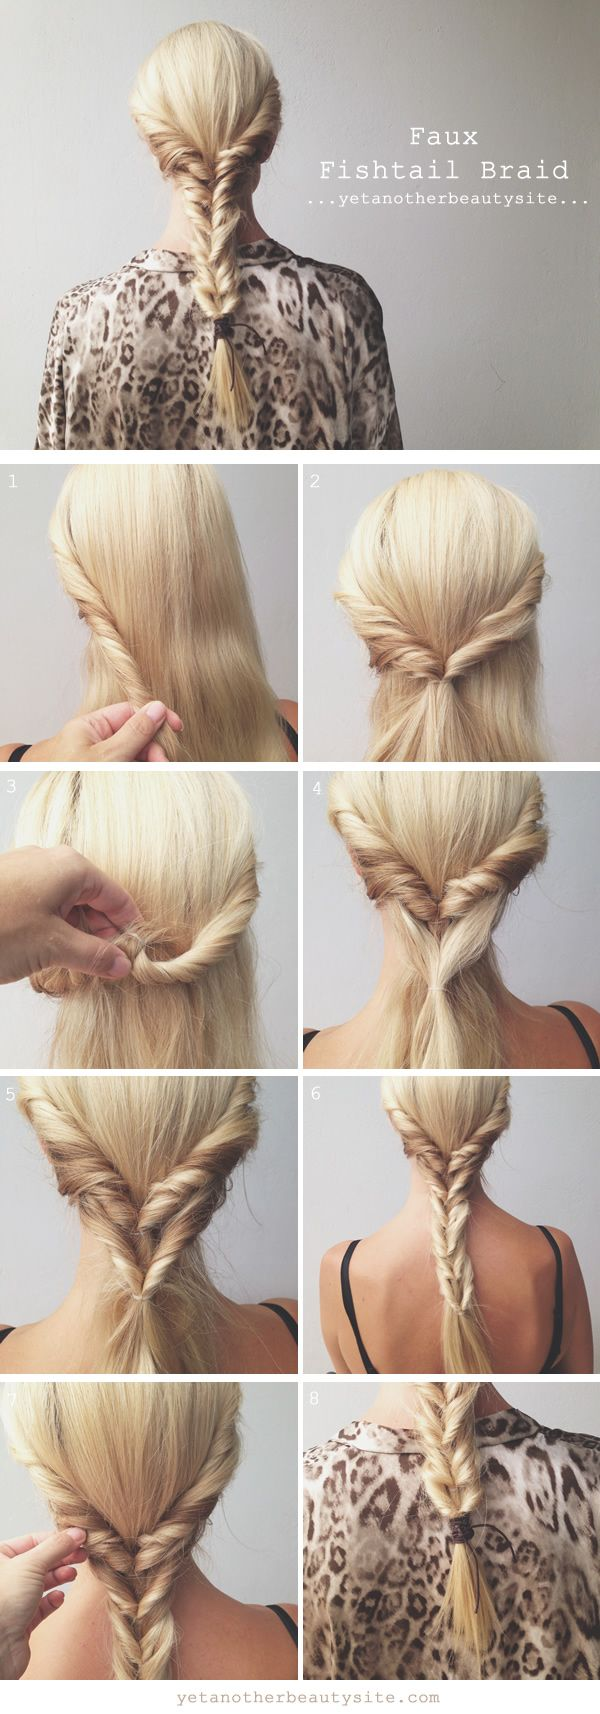 Another way to do a fishtail braid